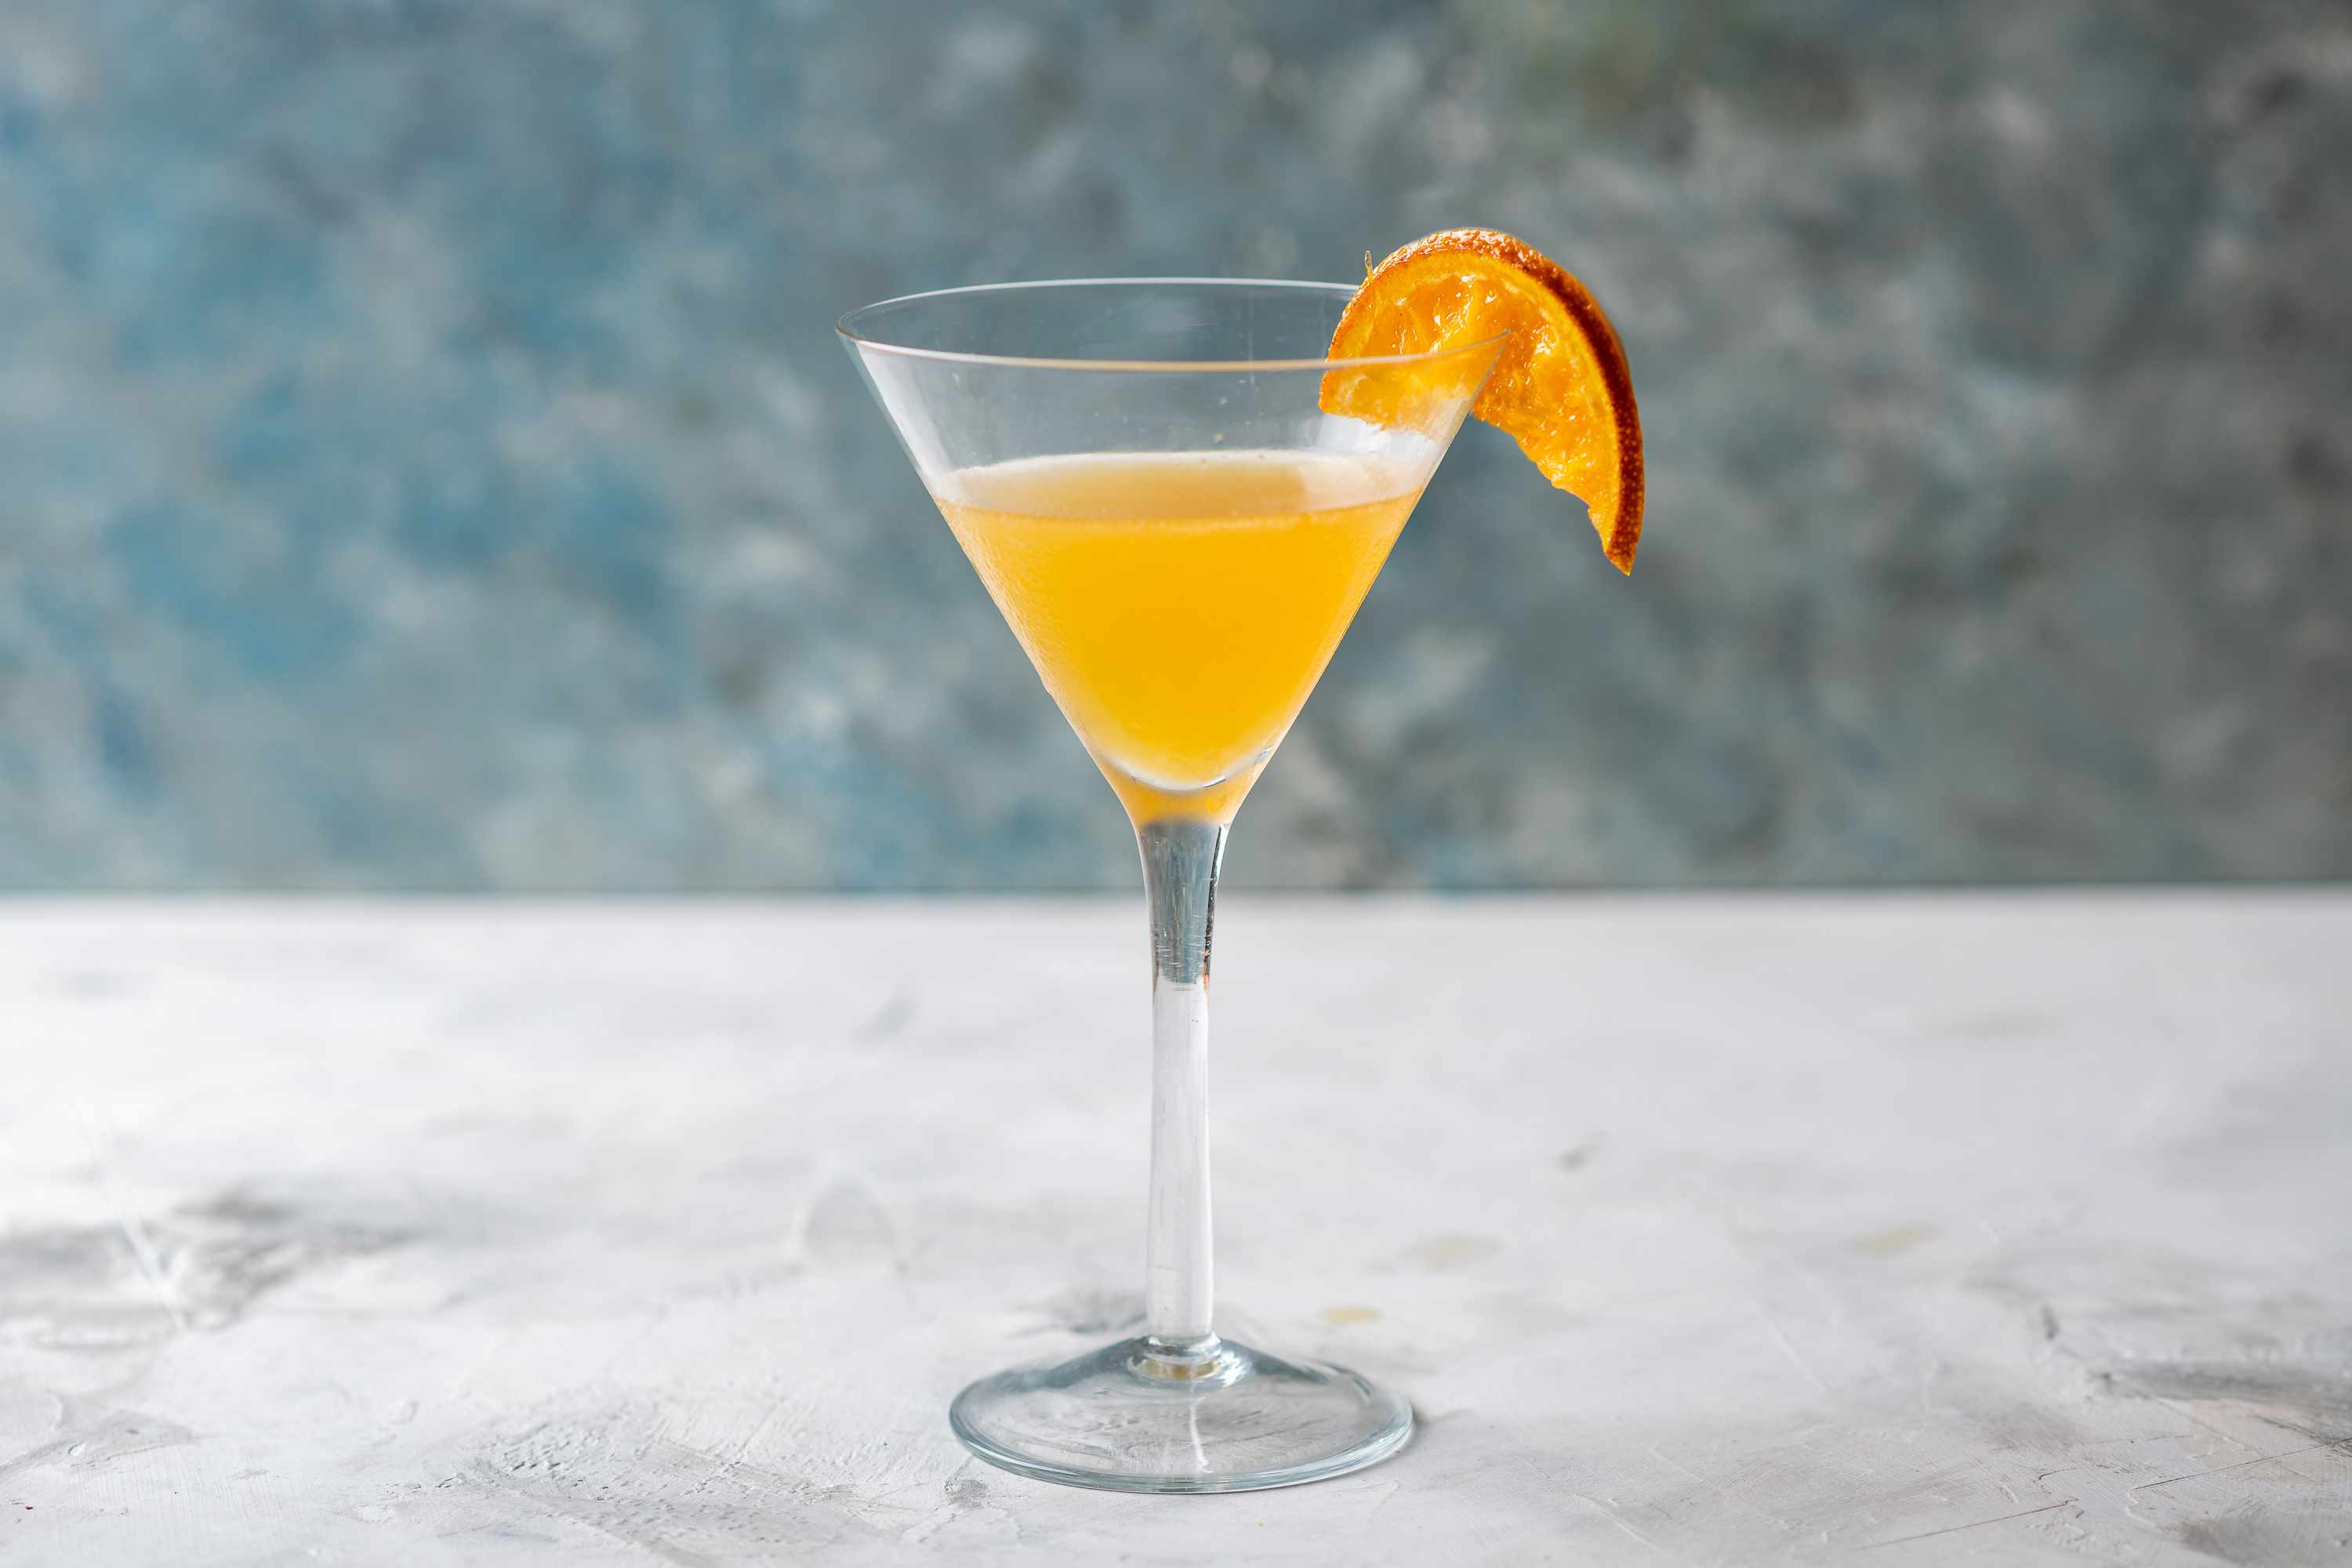 The Grand Manhattan Cocktail in a cocktail glass